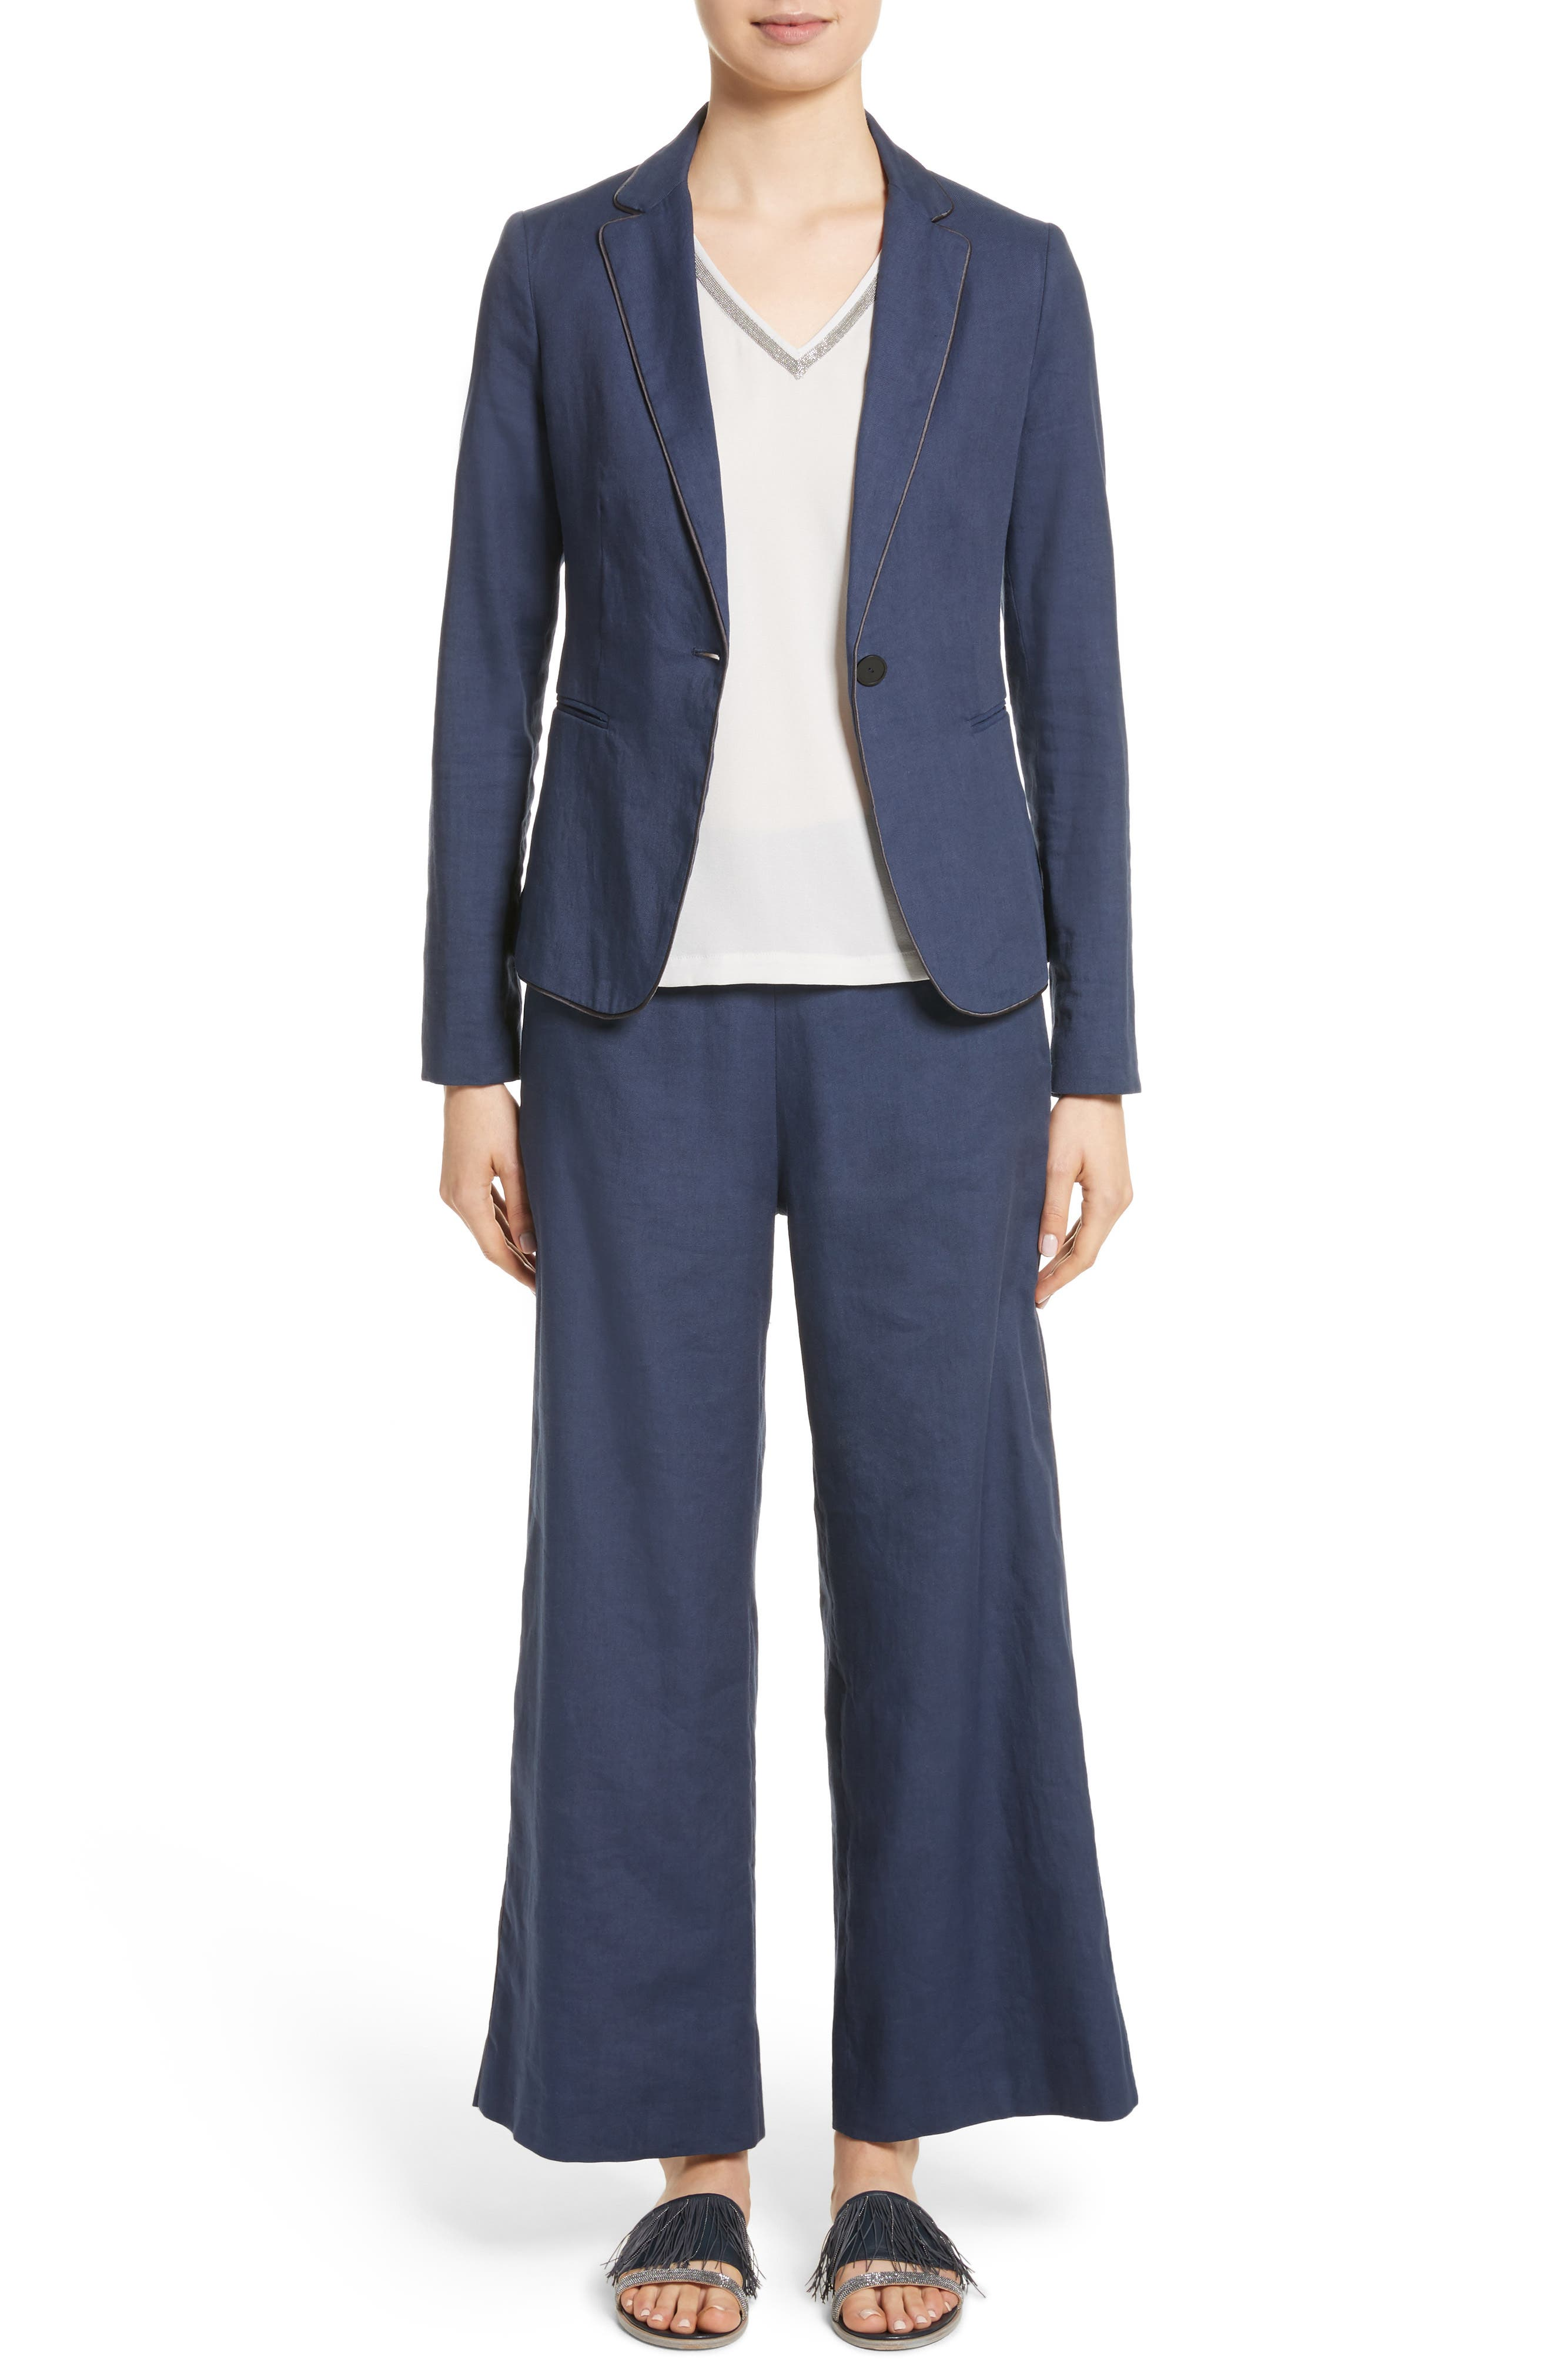 Piped Linen & Cotton Blend Blazer,                             Alternate thumbnail 8, color,                             Navy